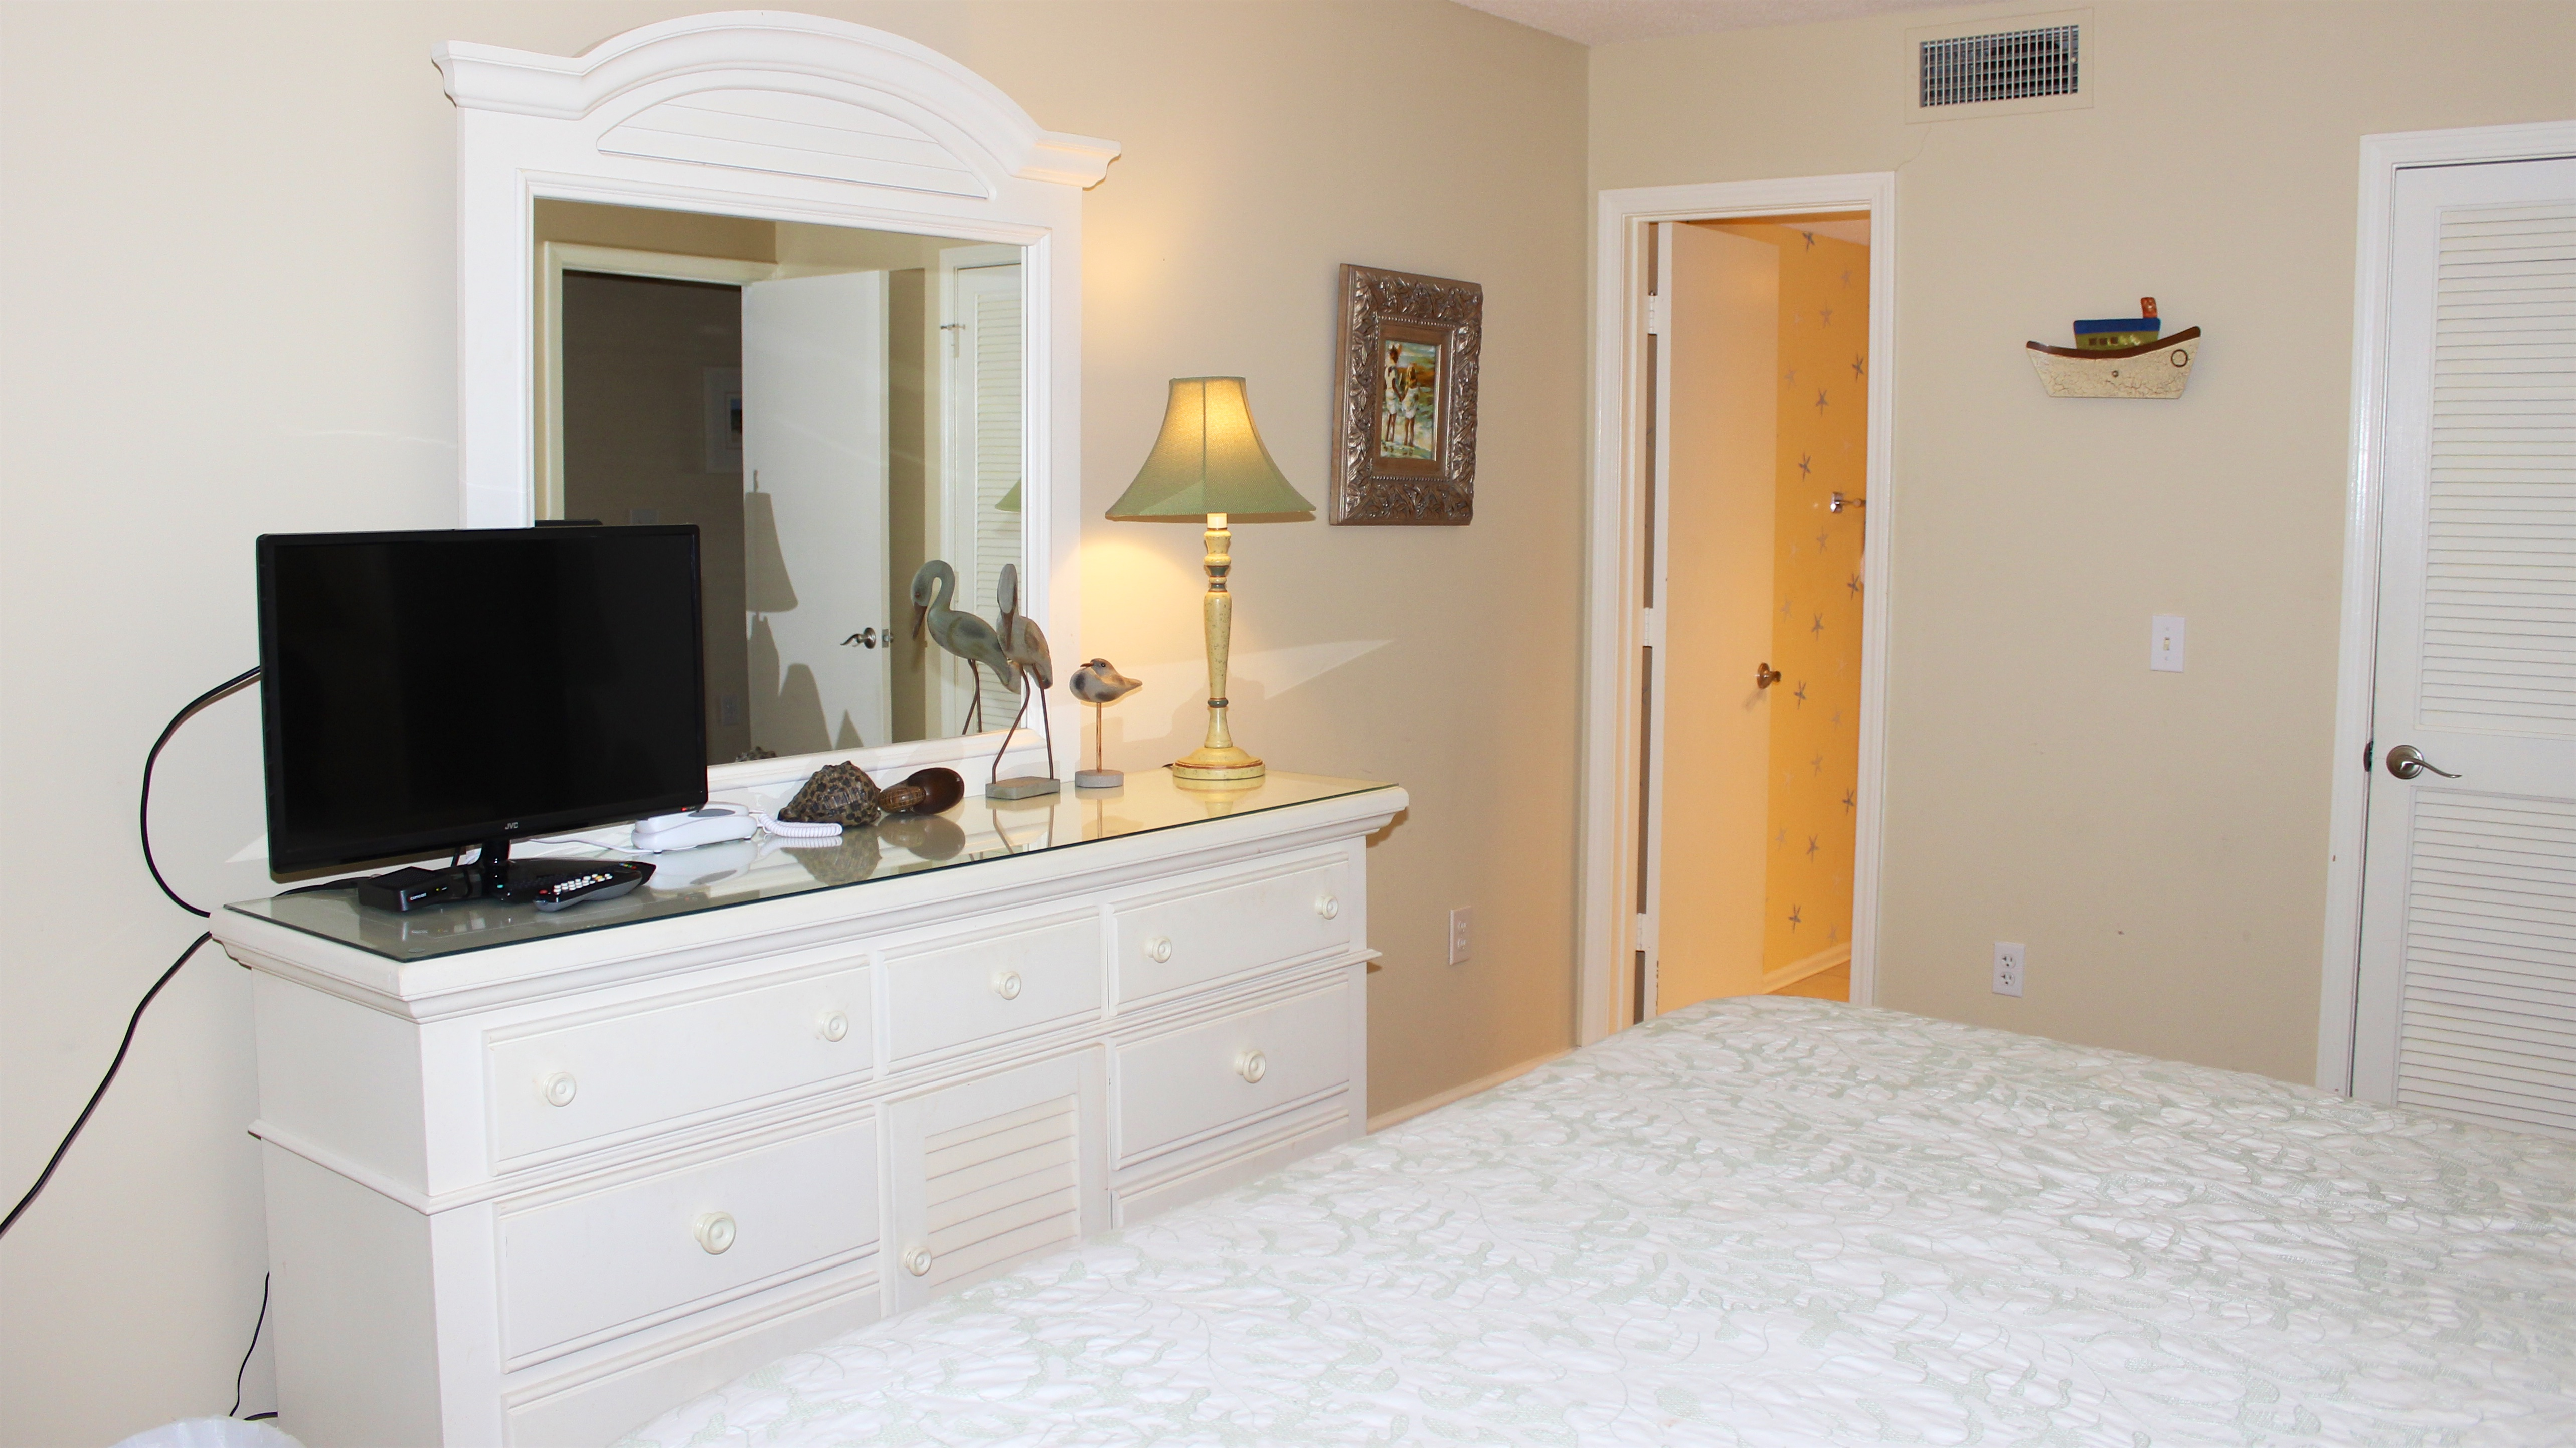 There is a flat screen TV for viewing shows and an adjoining bathroom.